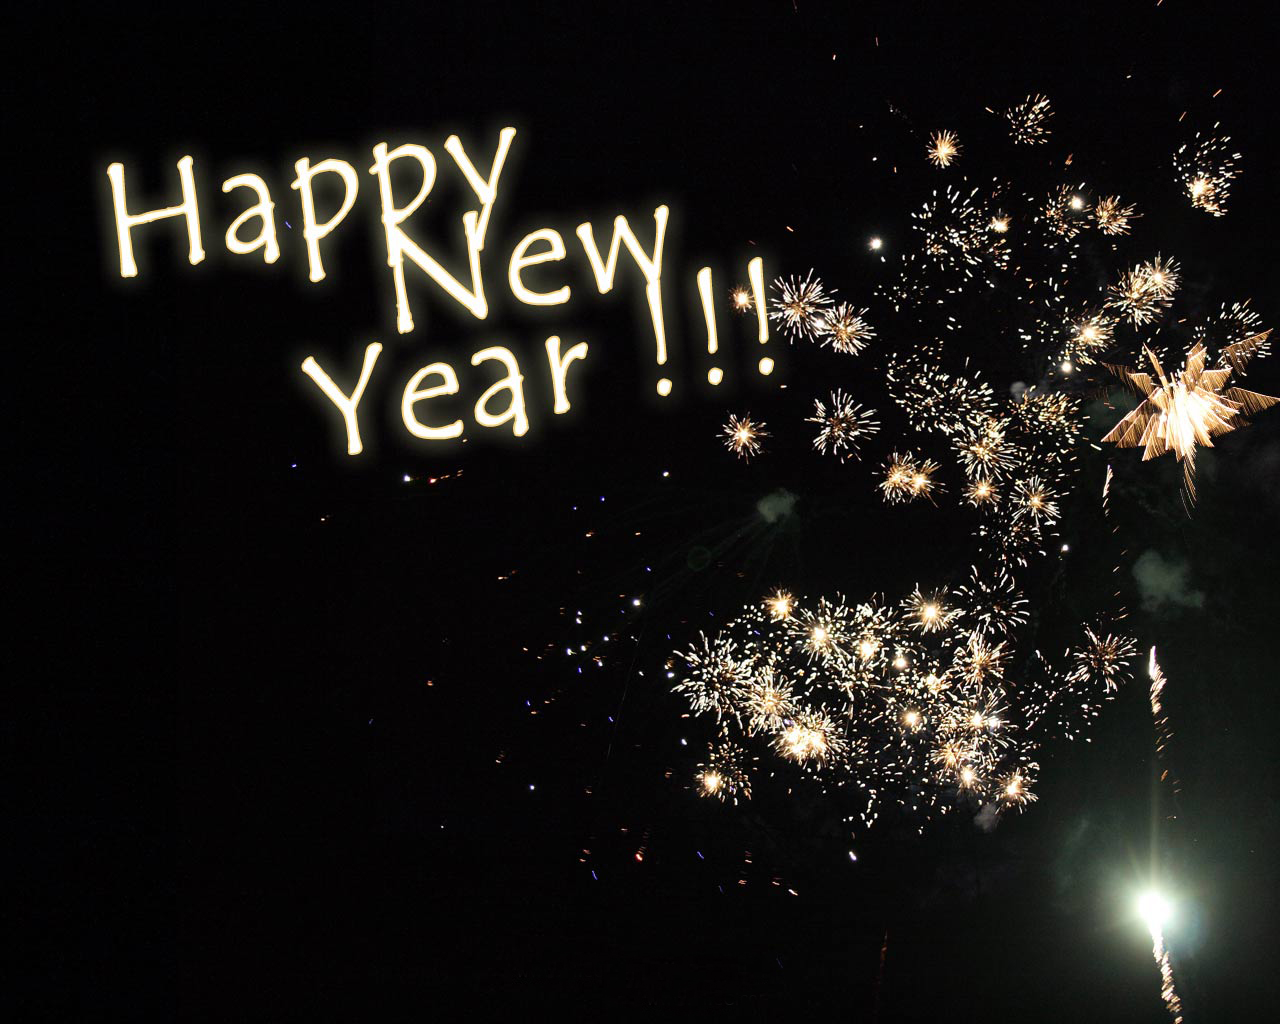 happy new year wishes 2016: happy new year 2016 facebook cover